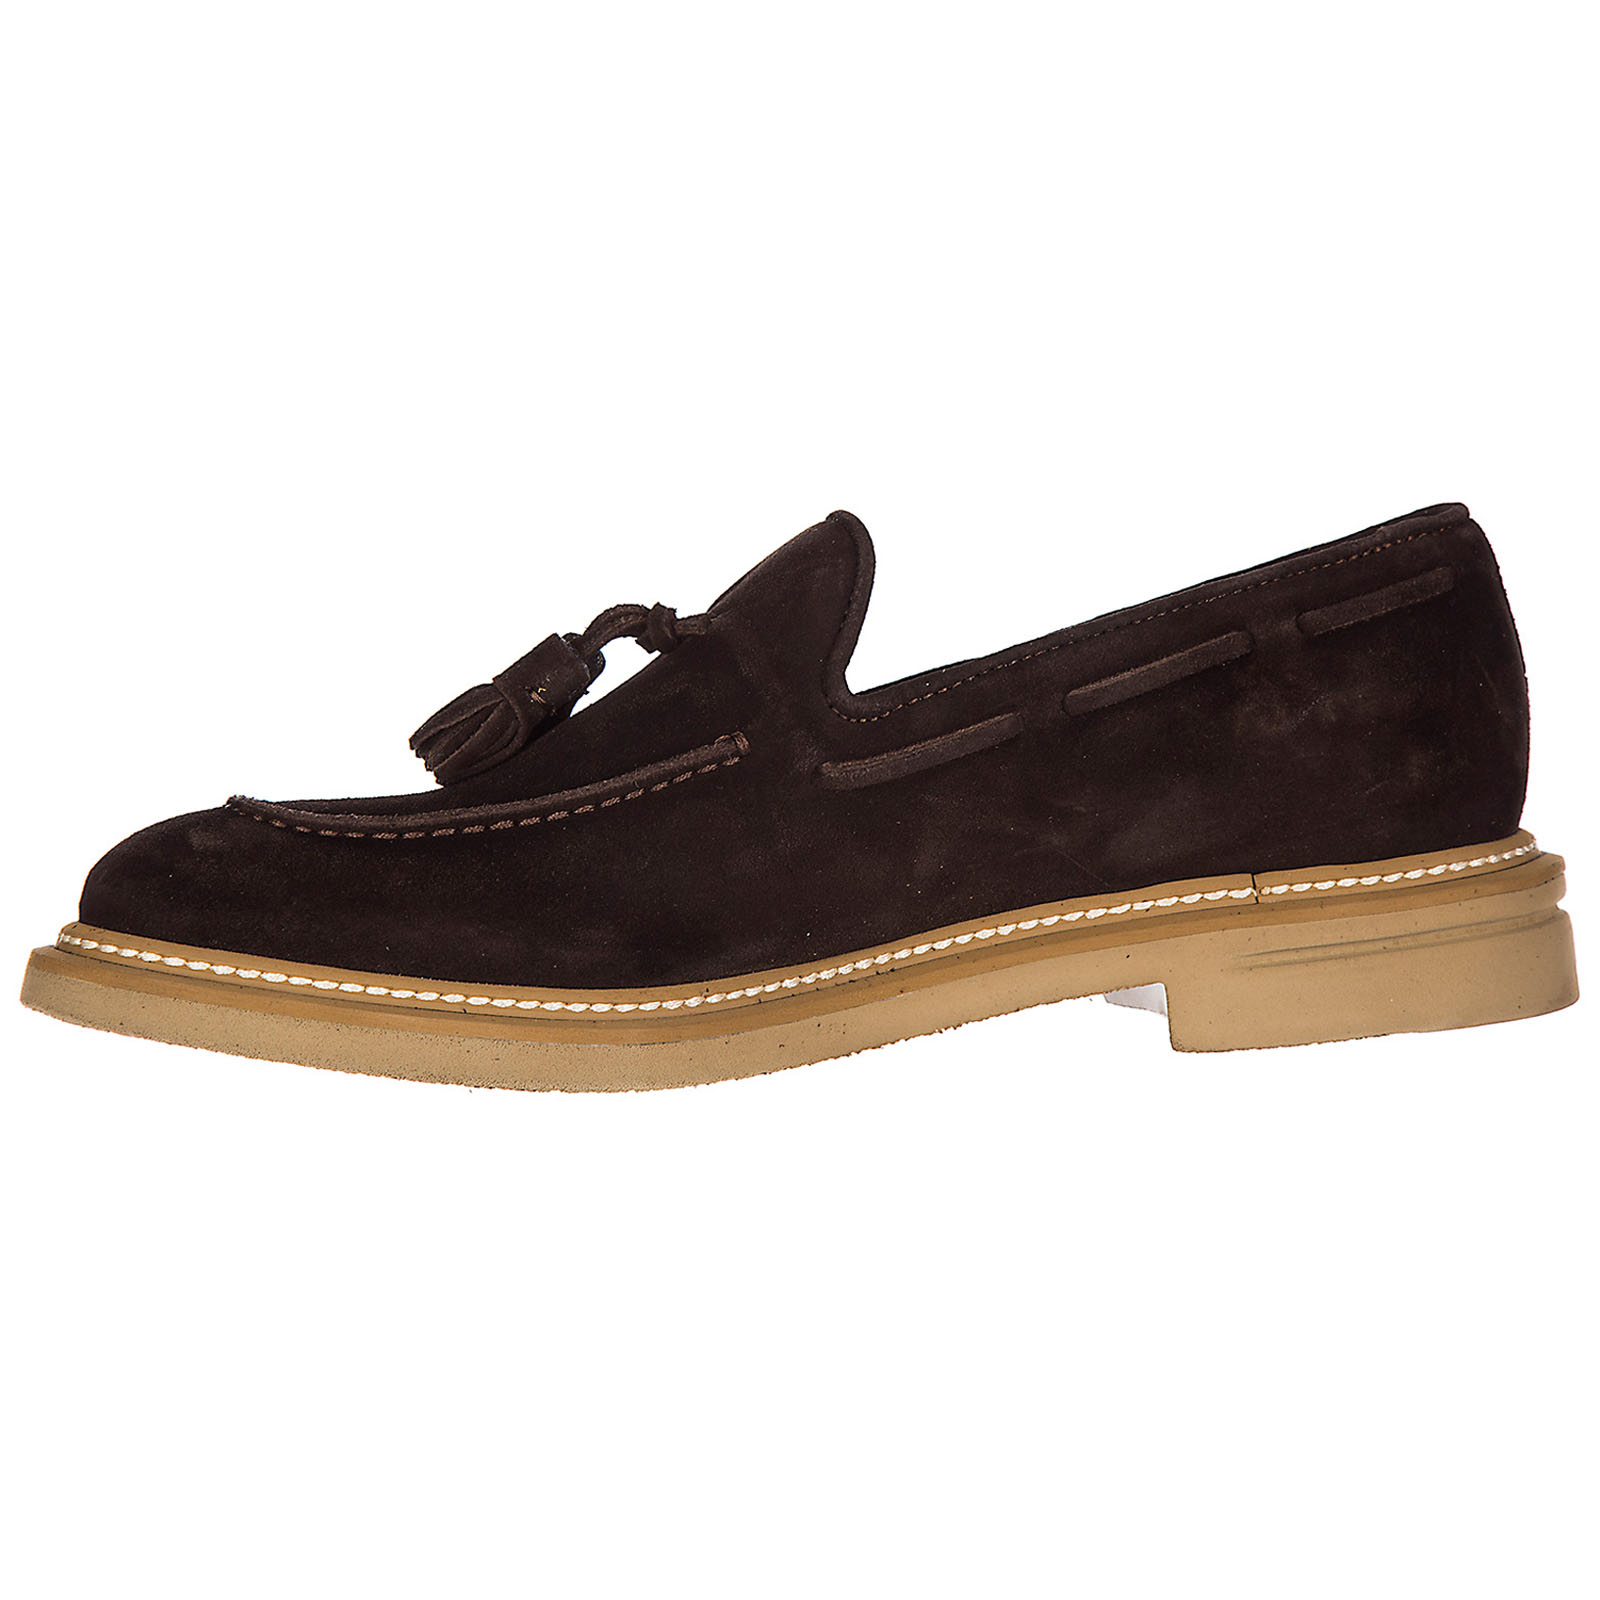 Wildleder mokassins herren slipper